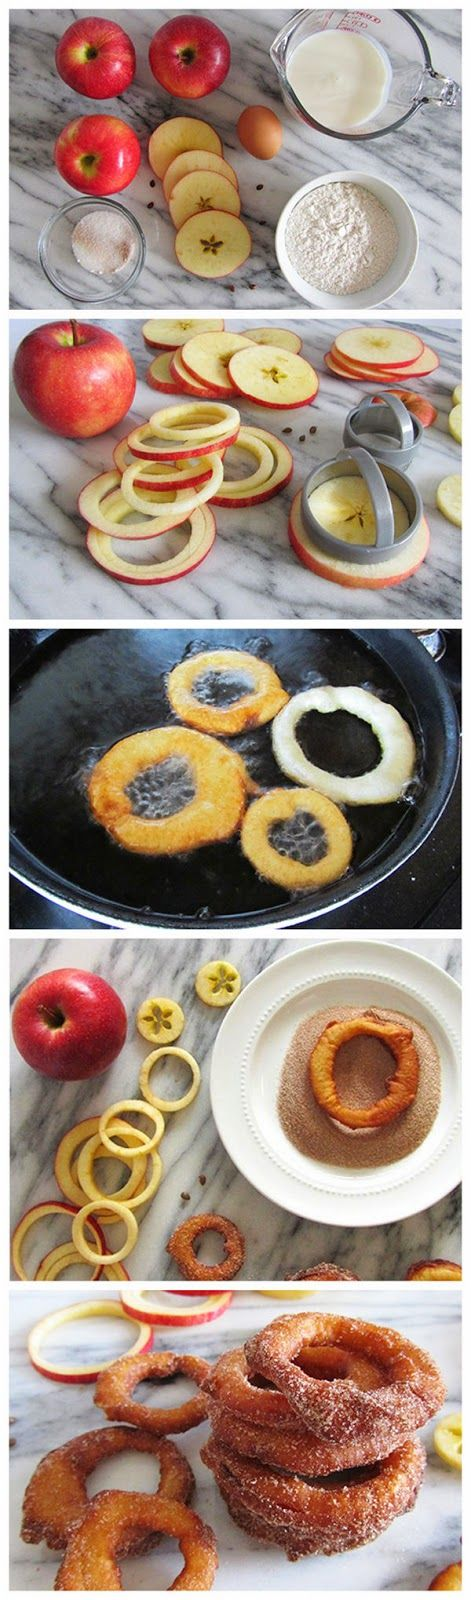 cinnamon apple rings / eatviews